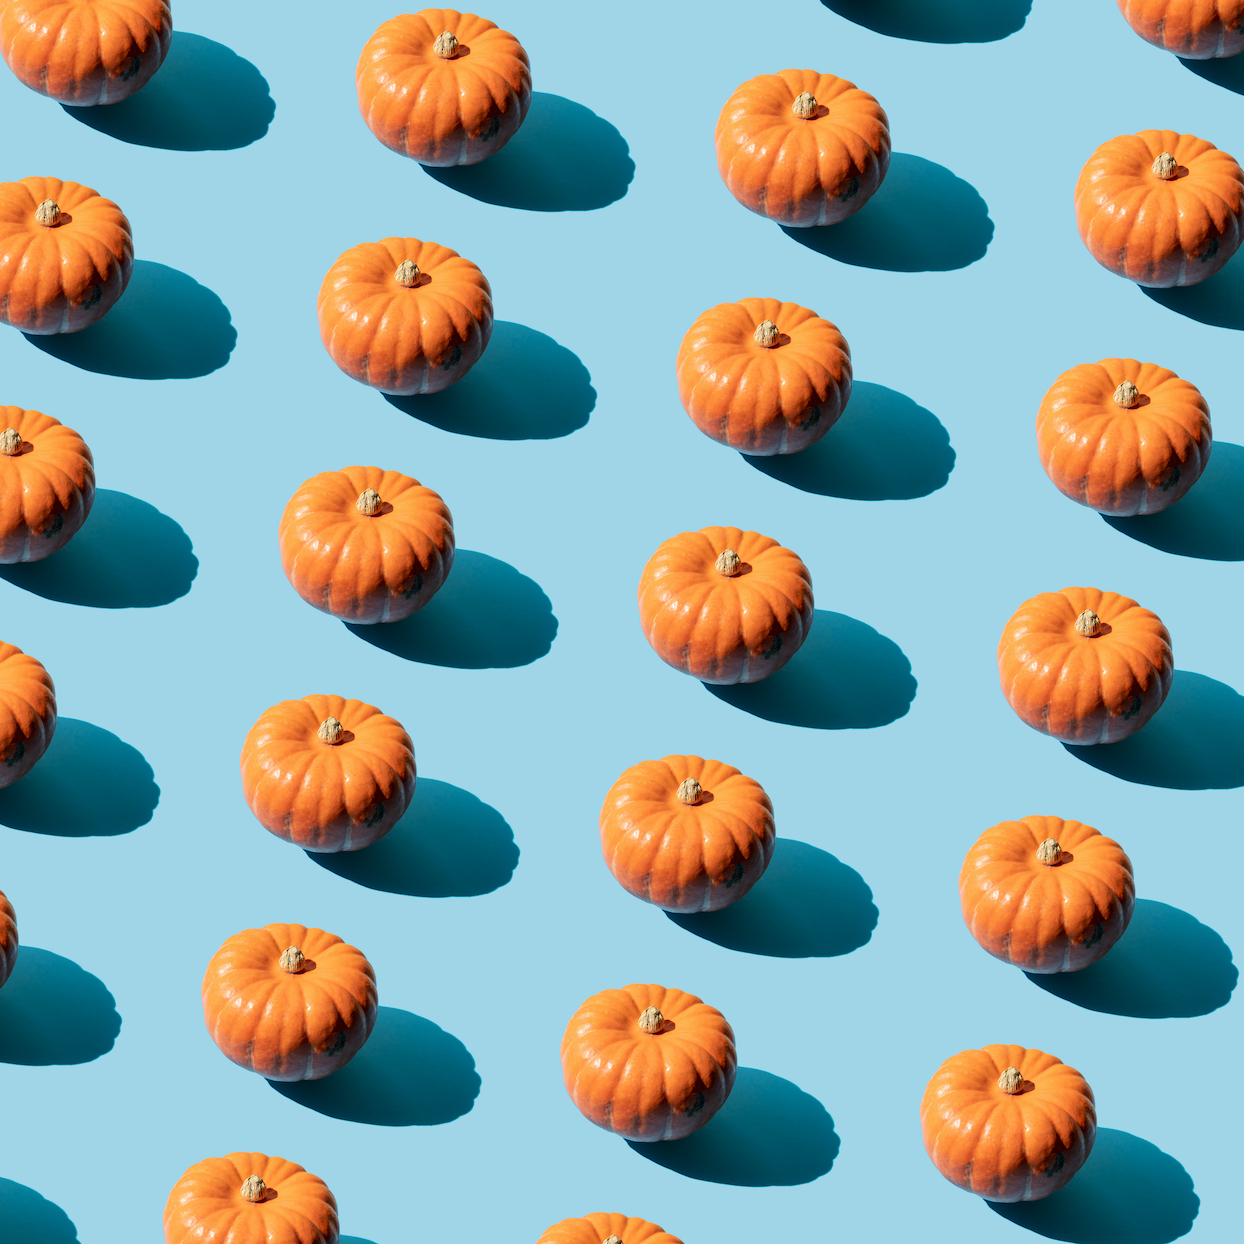 Repeated pumpkin on the blue background